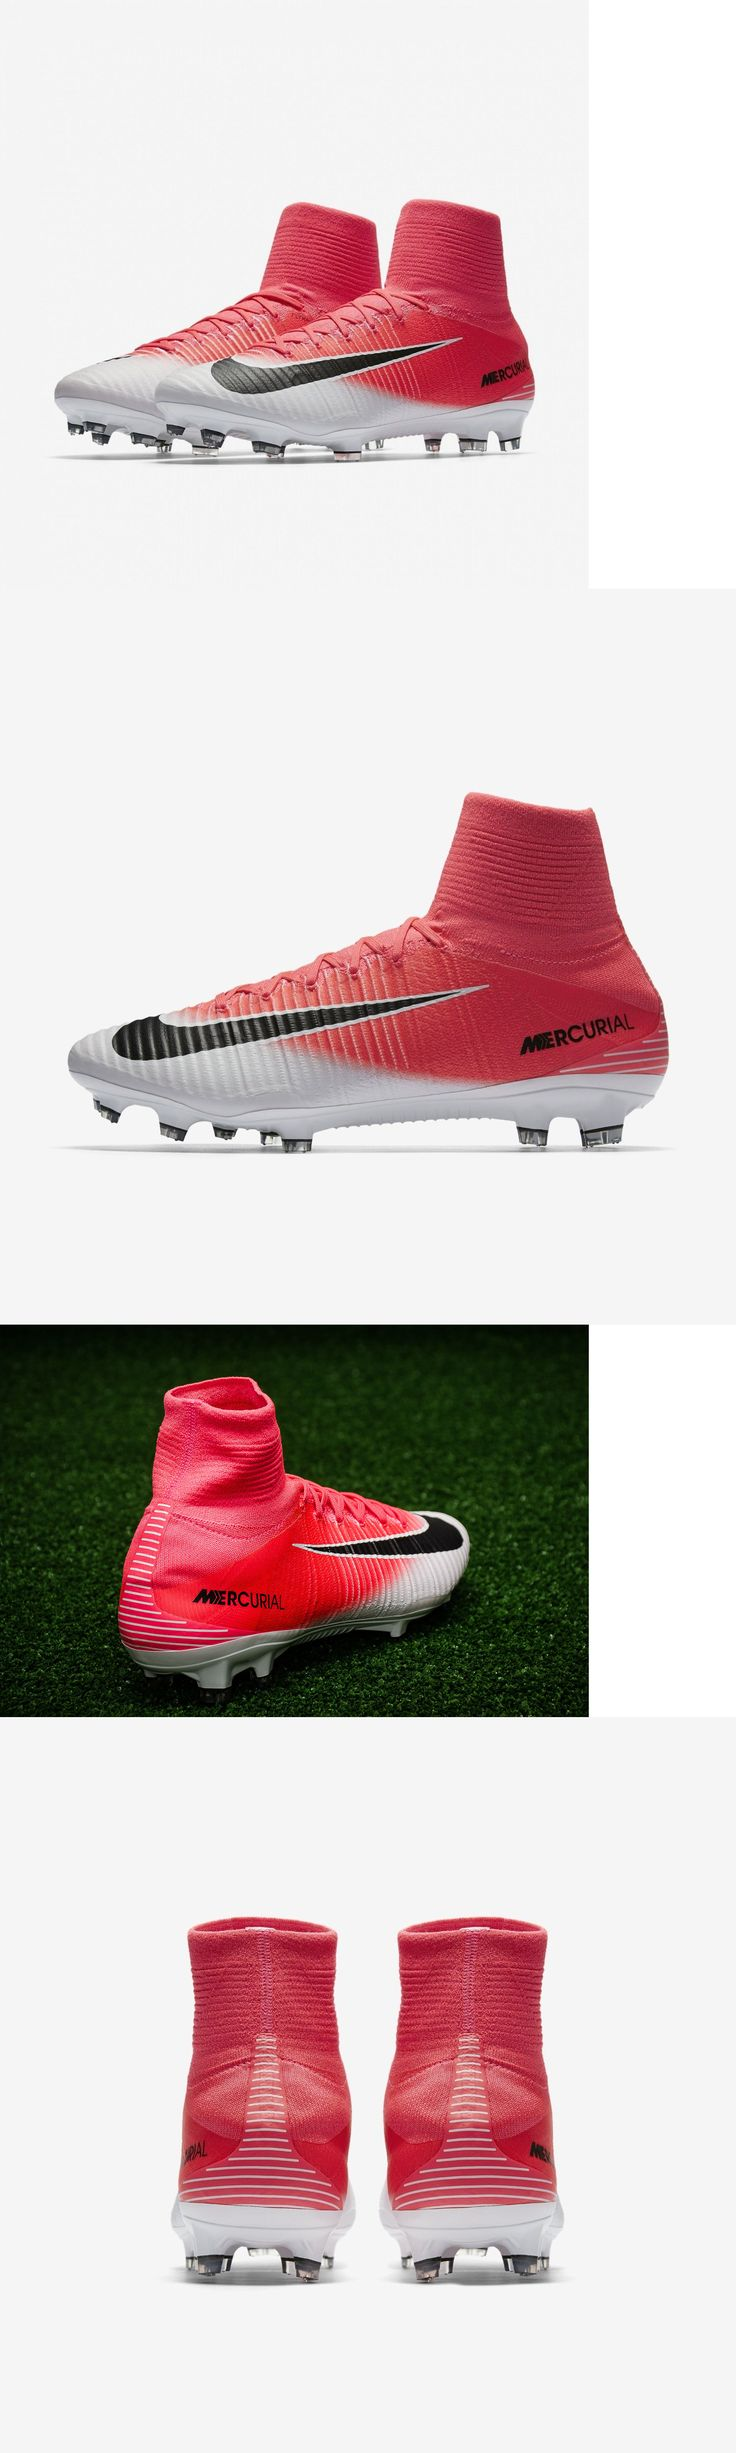 Men 109133: New Nike Mercurial Superfly V Df Fg Soccer Cleats Racer Pink 831940-601 -> BUY IT NOW ONLY: $104.99 on eBay!